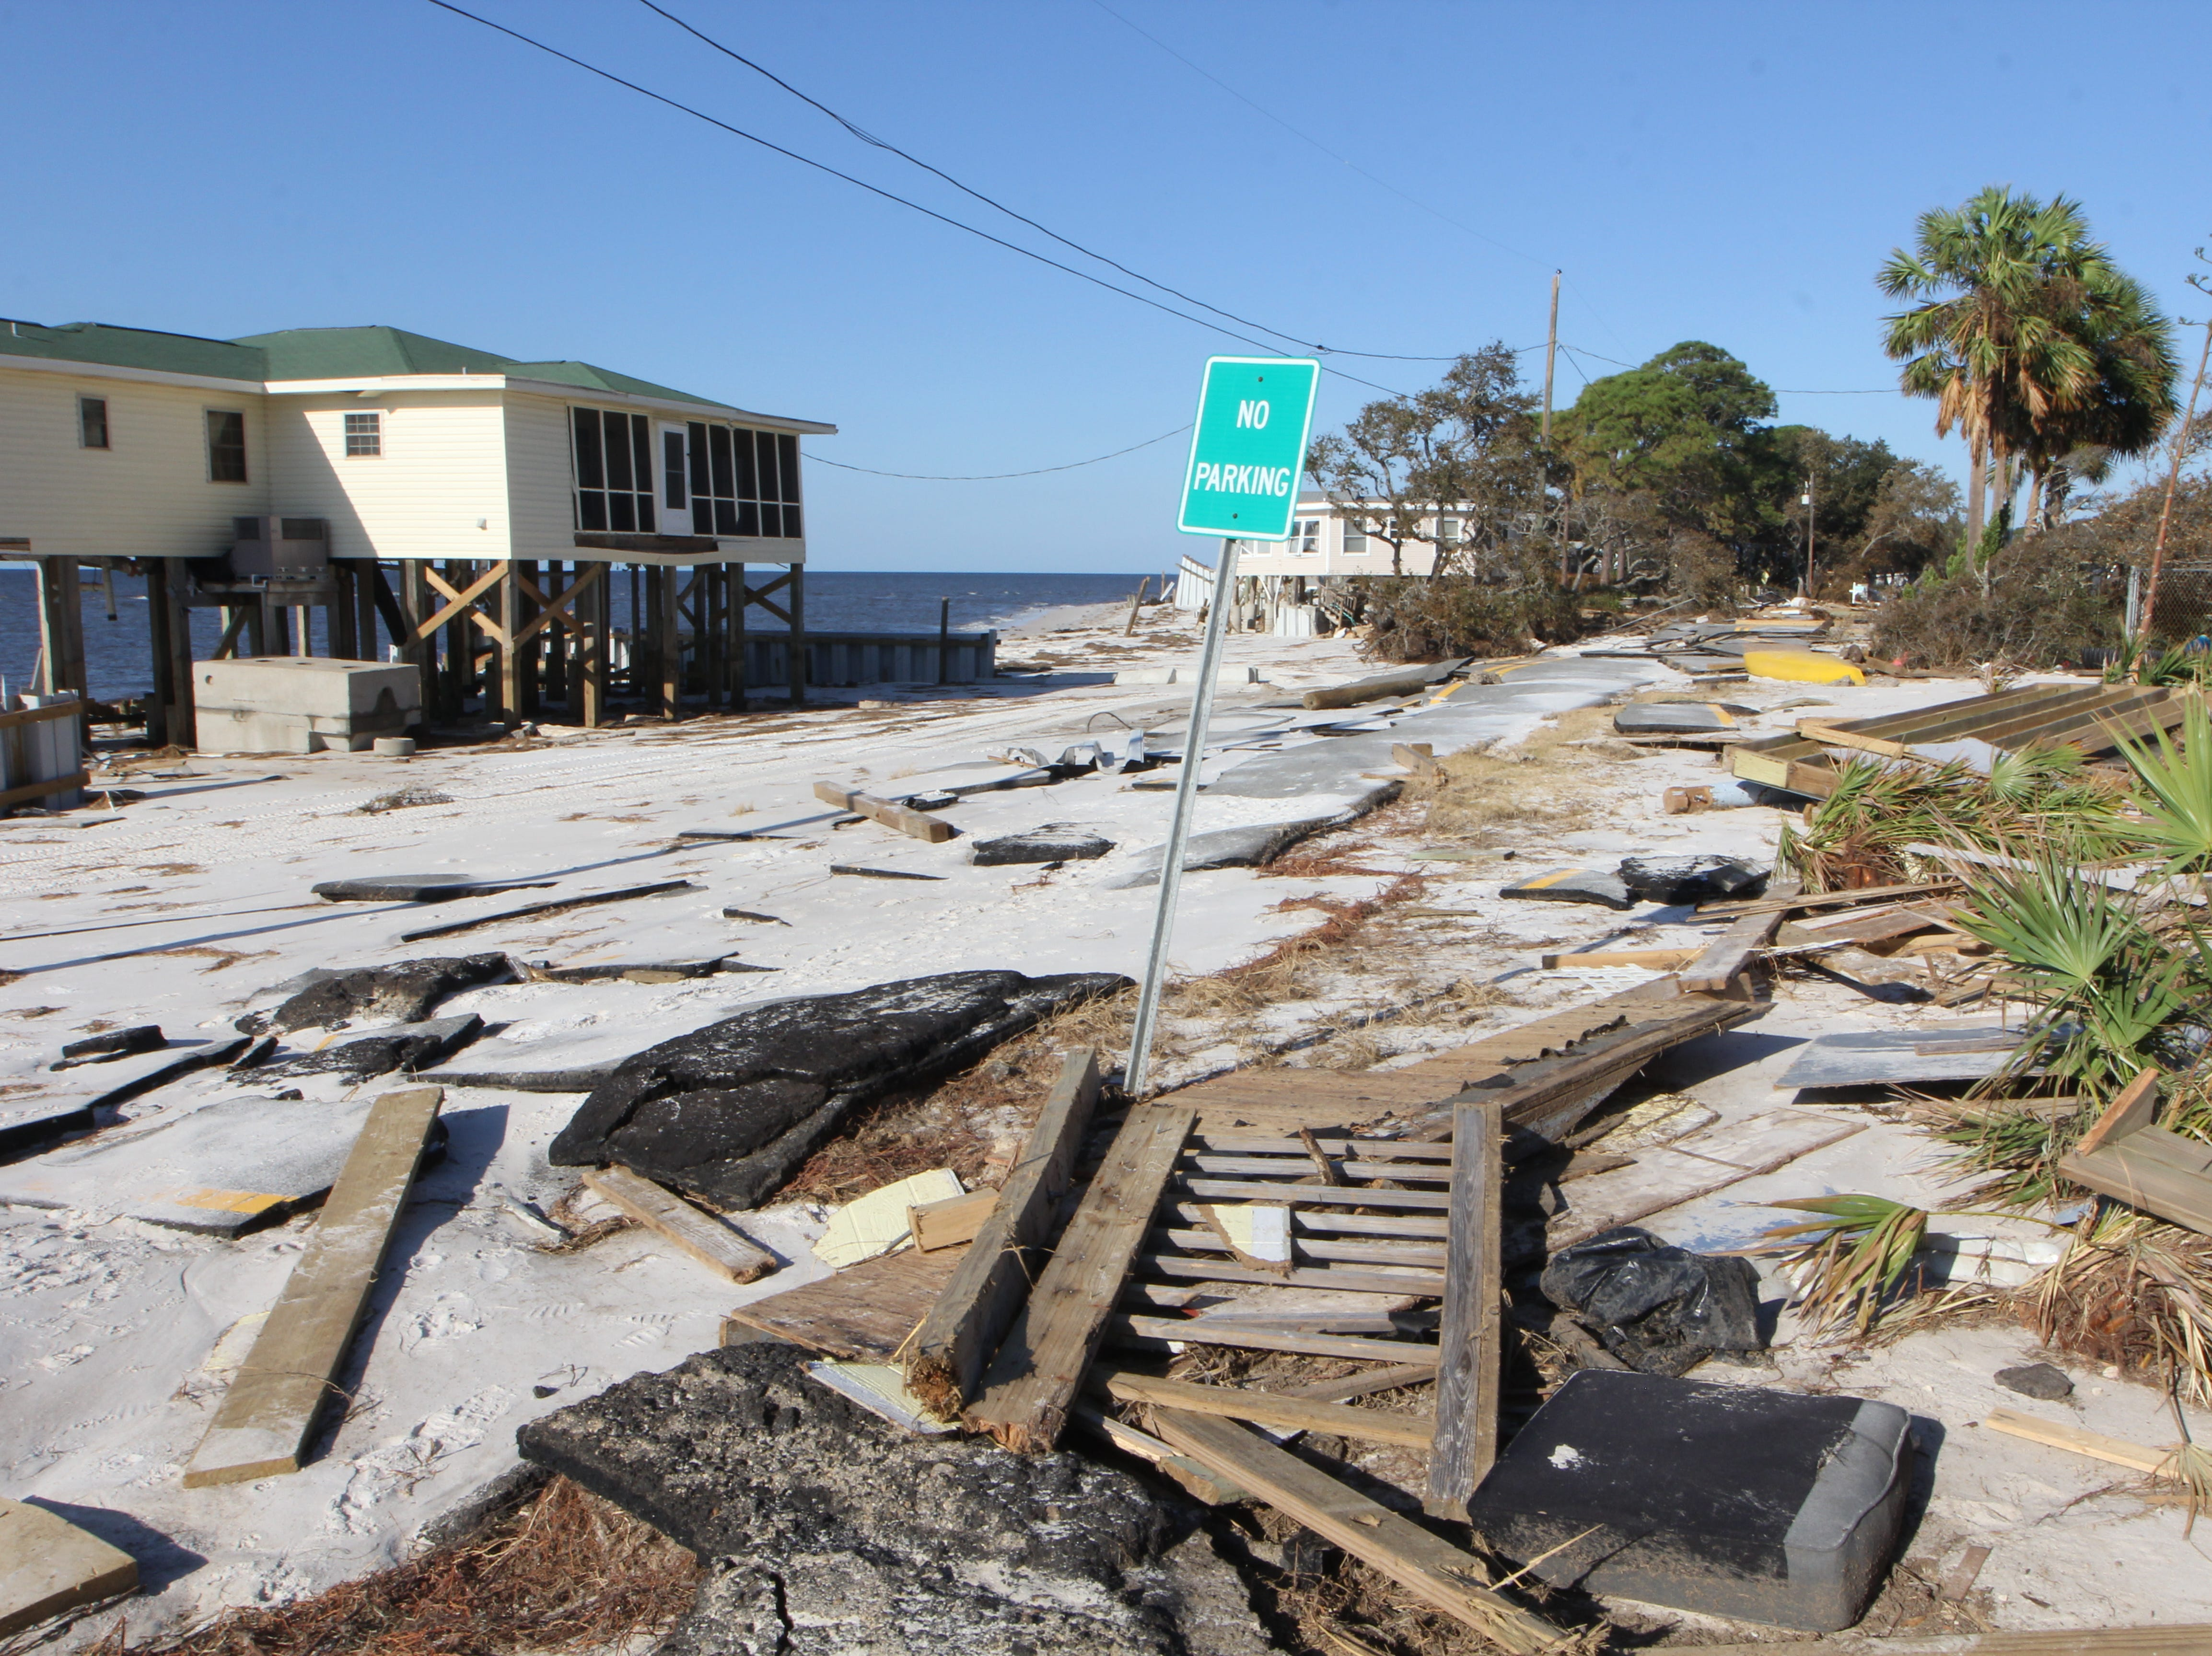 Rubble litters the roadway on Alligator Point after Hurricane Michael.